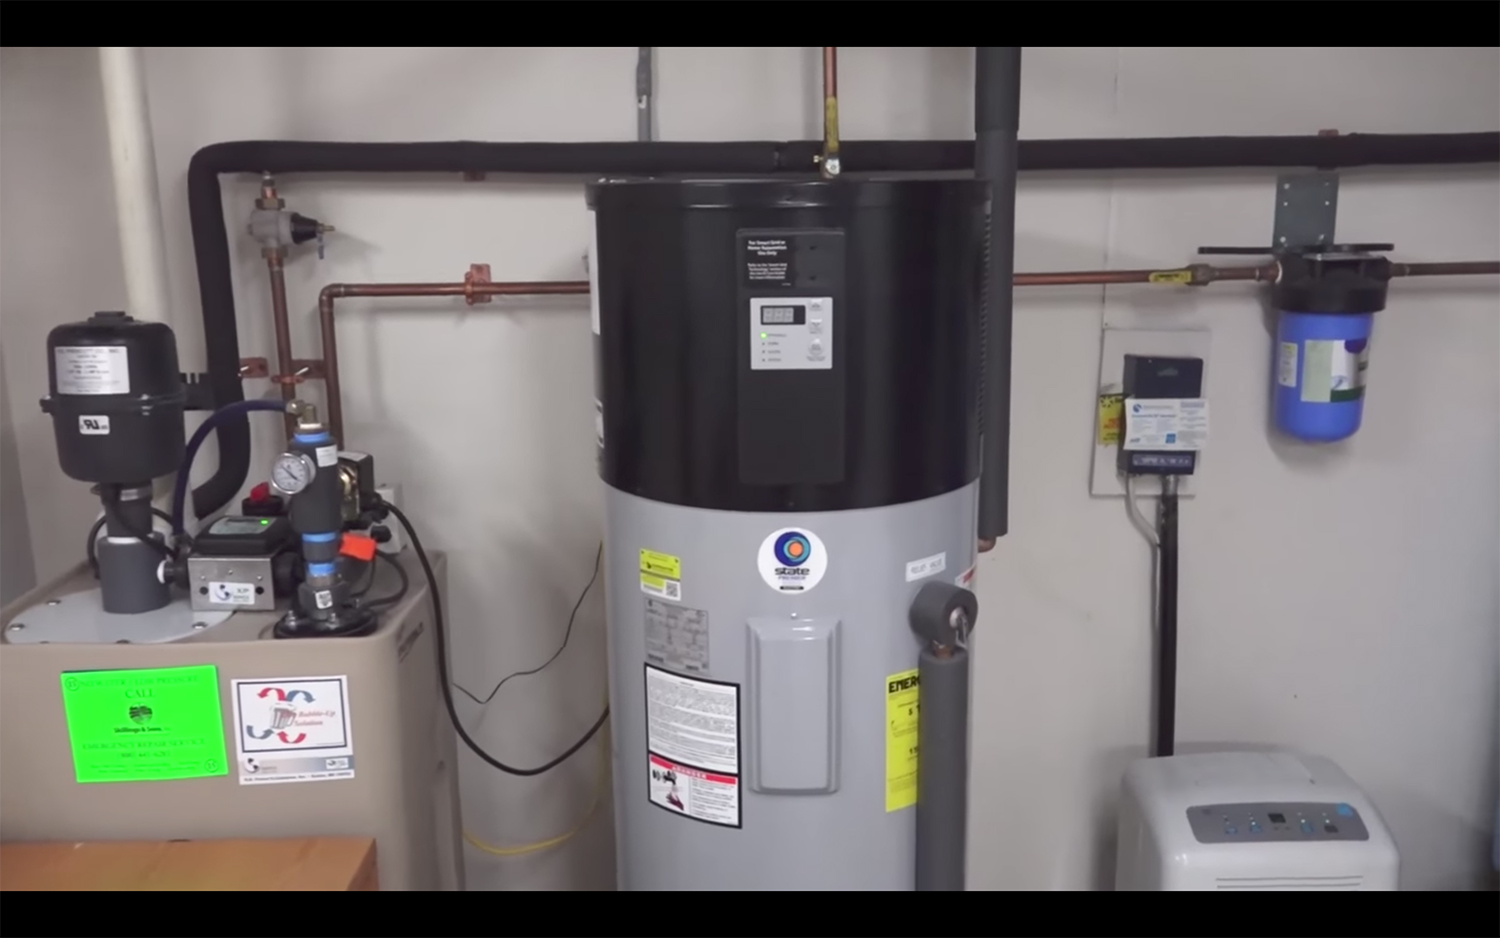 Heat Pump Water Heaters: How They Work and Help You Save Money